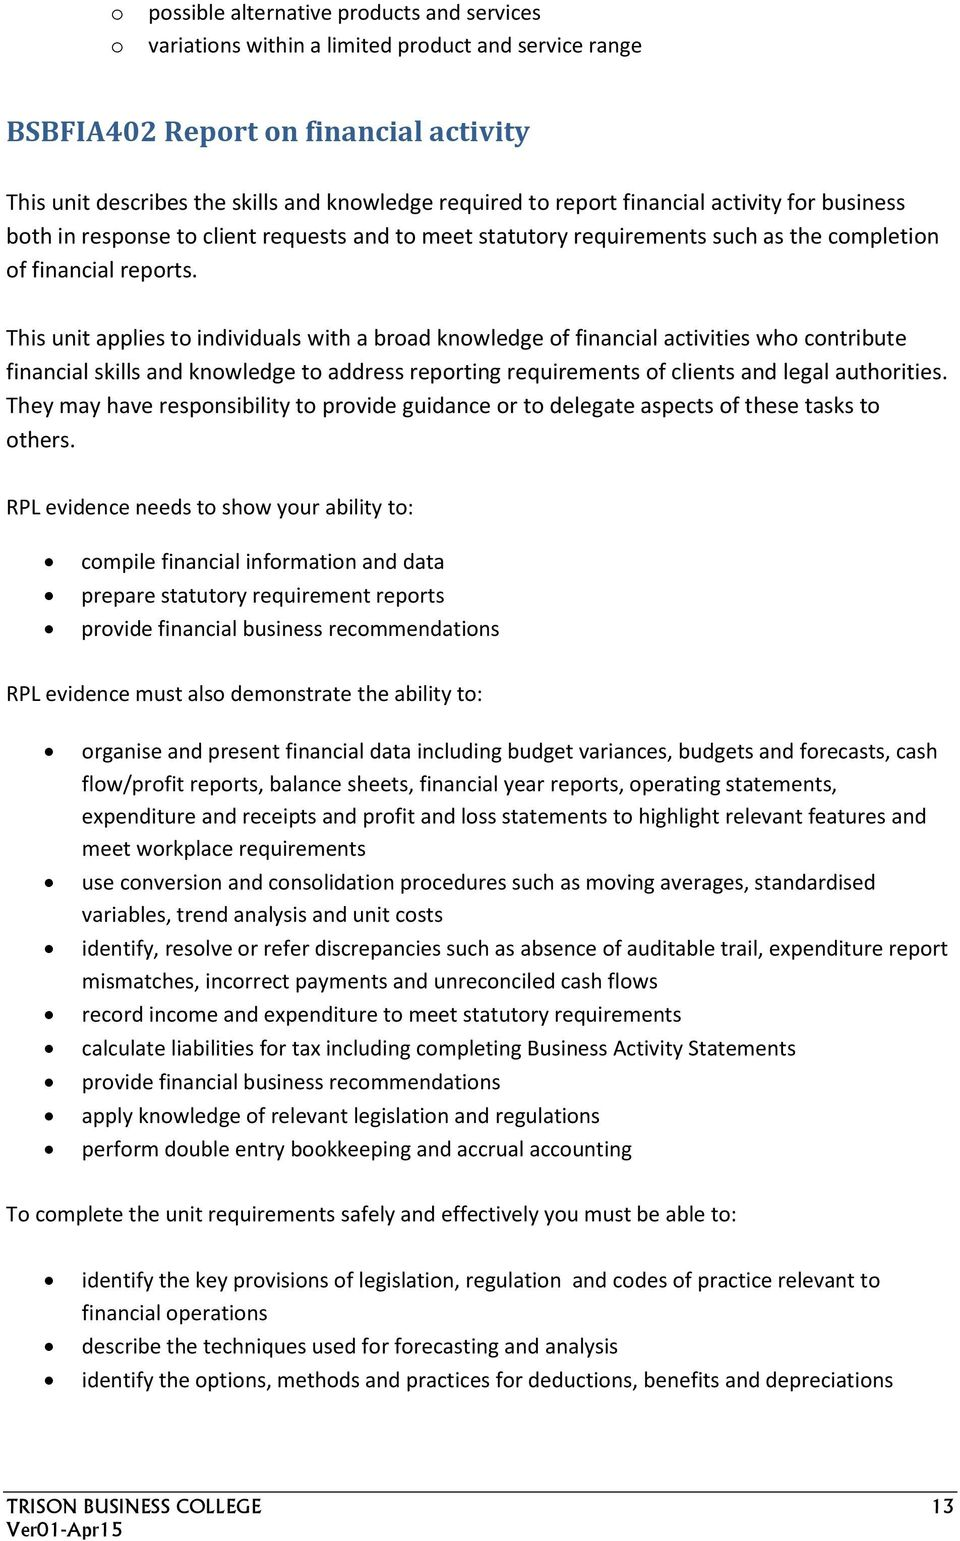 This unit applies to individuals with a broad knowledge of financial activities who contribute financial skills and knowledge to address reporting requirements of clients and legal authorities.